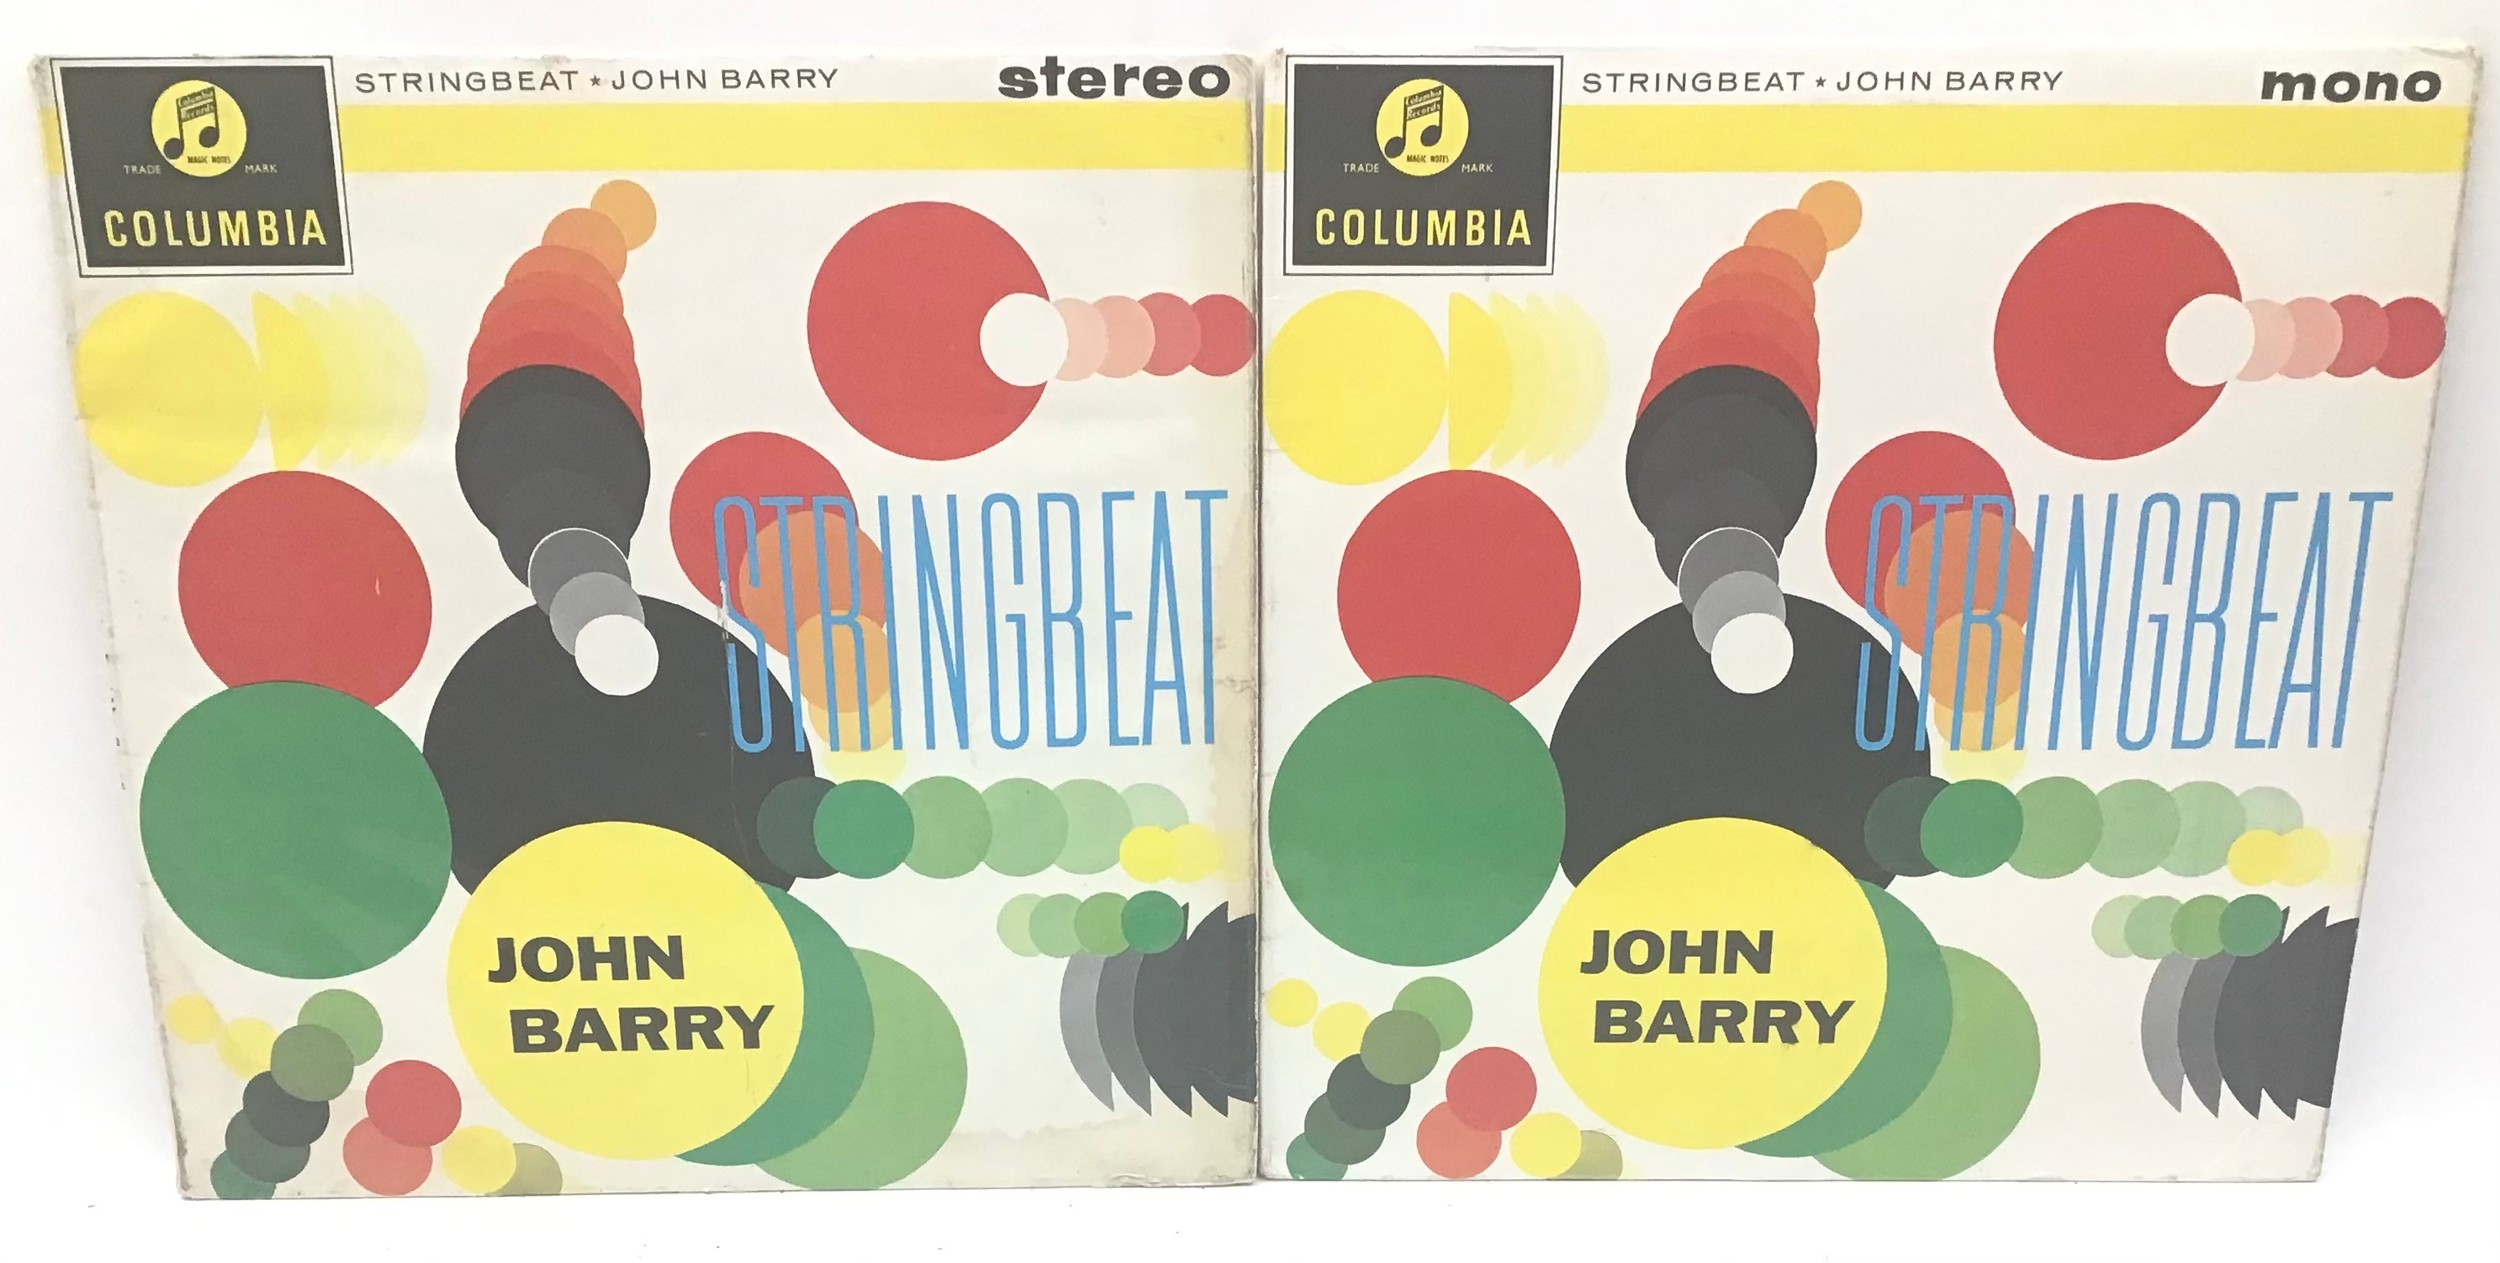 JOHN BARRY VINYL LP RECORDS. Here we have a mono and stereo copy of ?Stringbeat? on Columbia SCX